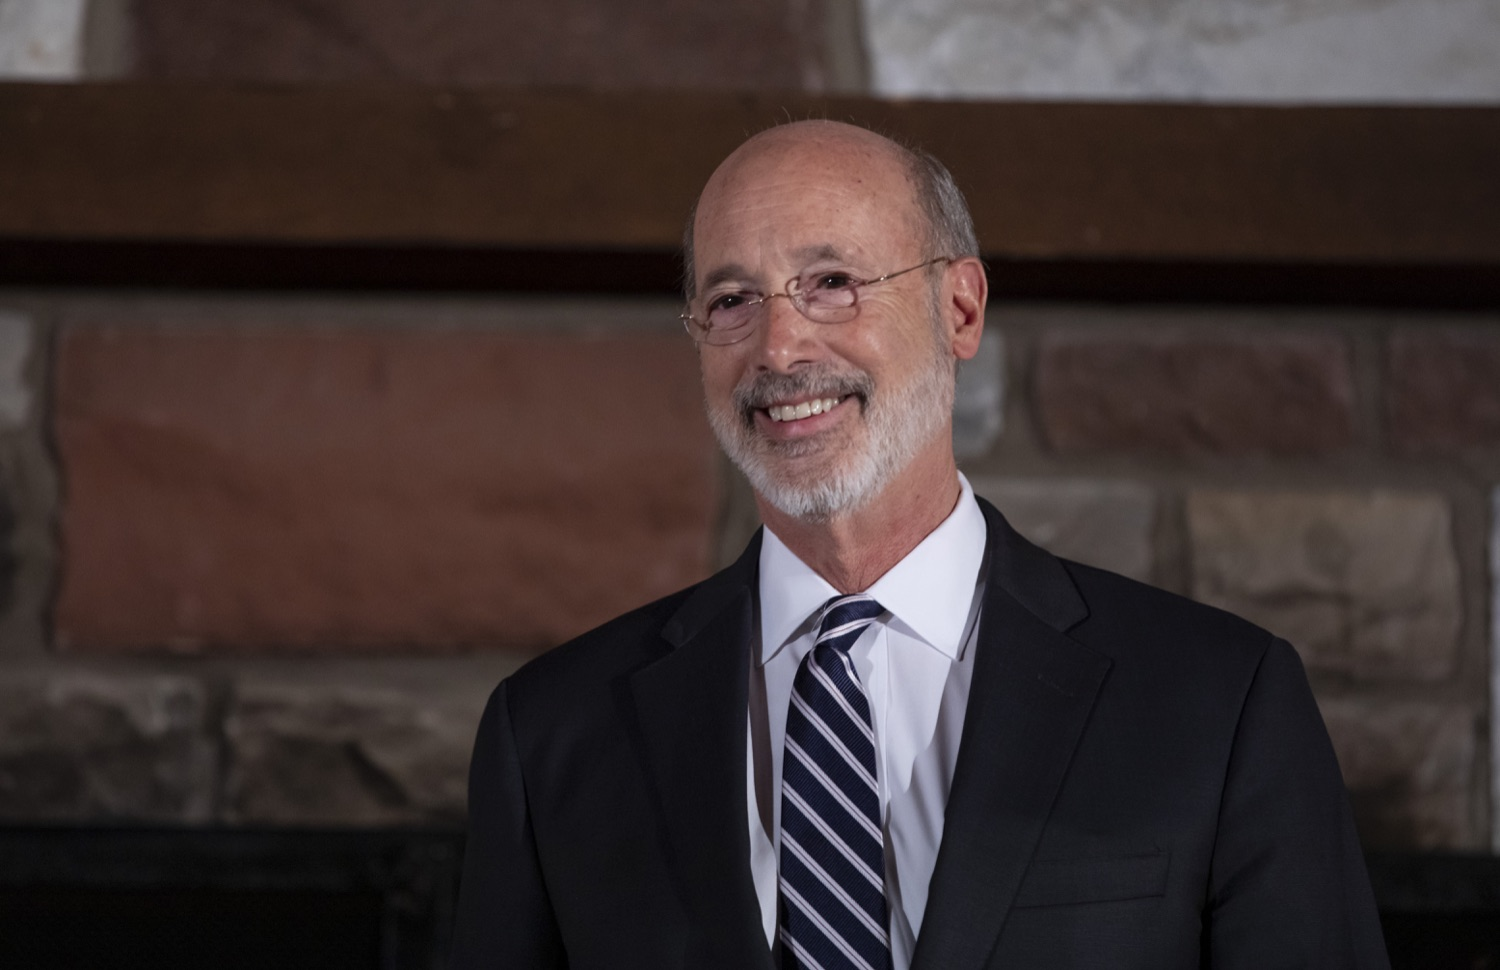 """<a href=""""https://filesource.wostreaming.net/commonwealthofpa/photo/17557_gov_dmva_rjw_019.jpg"""" target=""""_blank"""">⇣Download Photo<br></a>Governor Tom Wolf helped to honor two members inducted today into the Pennsylvania Department of Military and Veterans Affairs prestigious Hall of Fame, recognizing their exceptional service to the department that supports Pennsylvanias nearly 800,000 veterans and 18,000 members of the National Guard.  Chief Warrant Officer 5 (ret.) John K. Schreier of Selinsgrove, Snyder County; and John A. Brenner (posthumously) of Mt. Wolf, York County, are the 2019 inductees."""